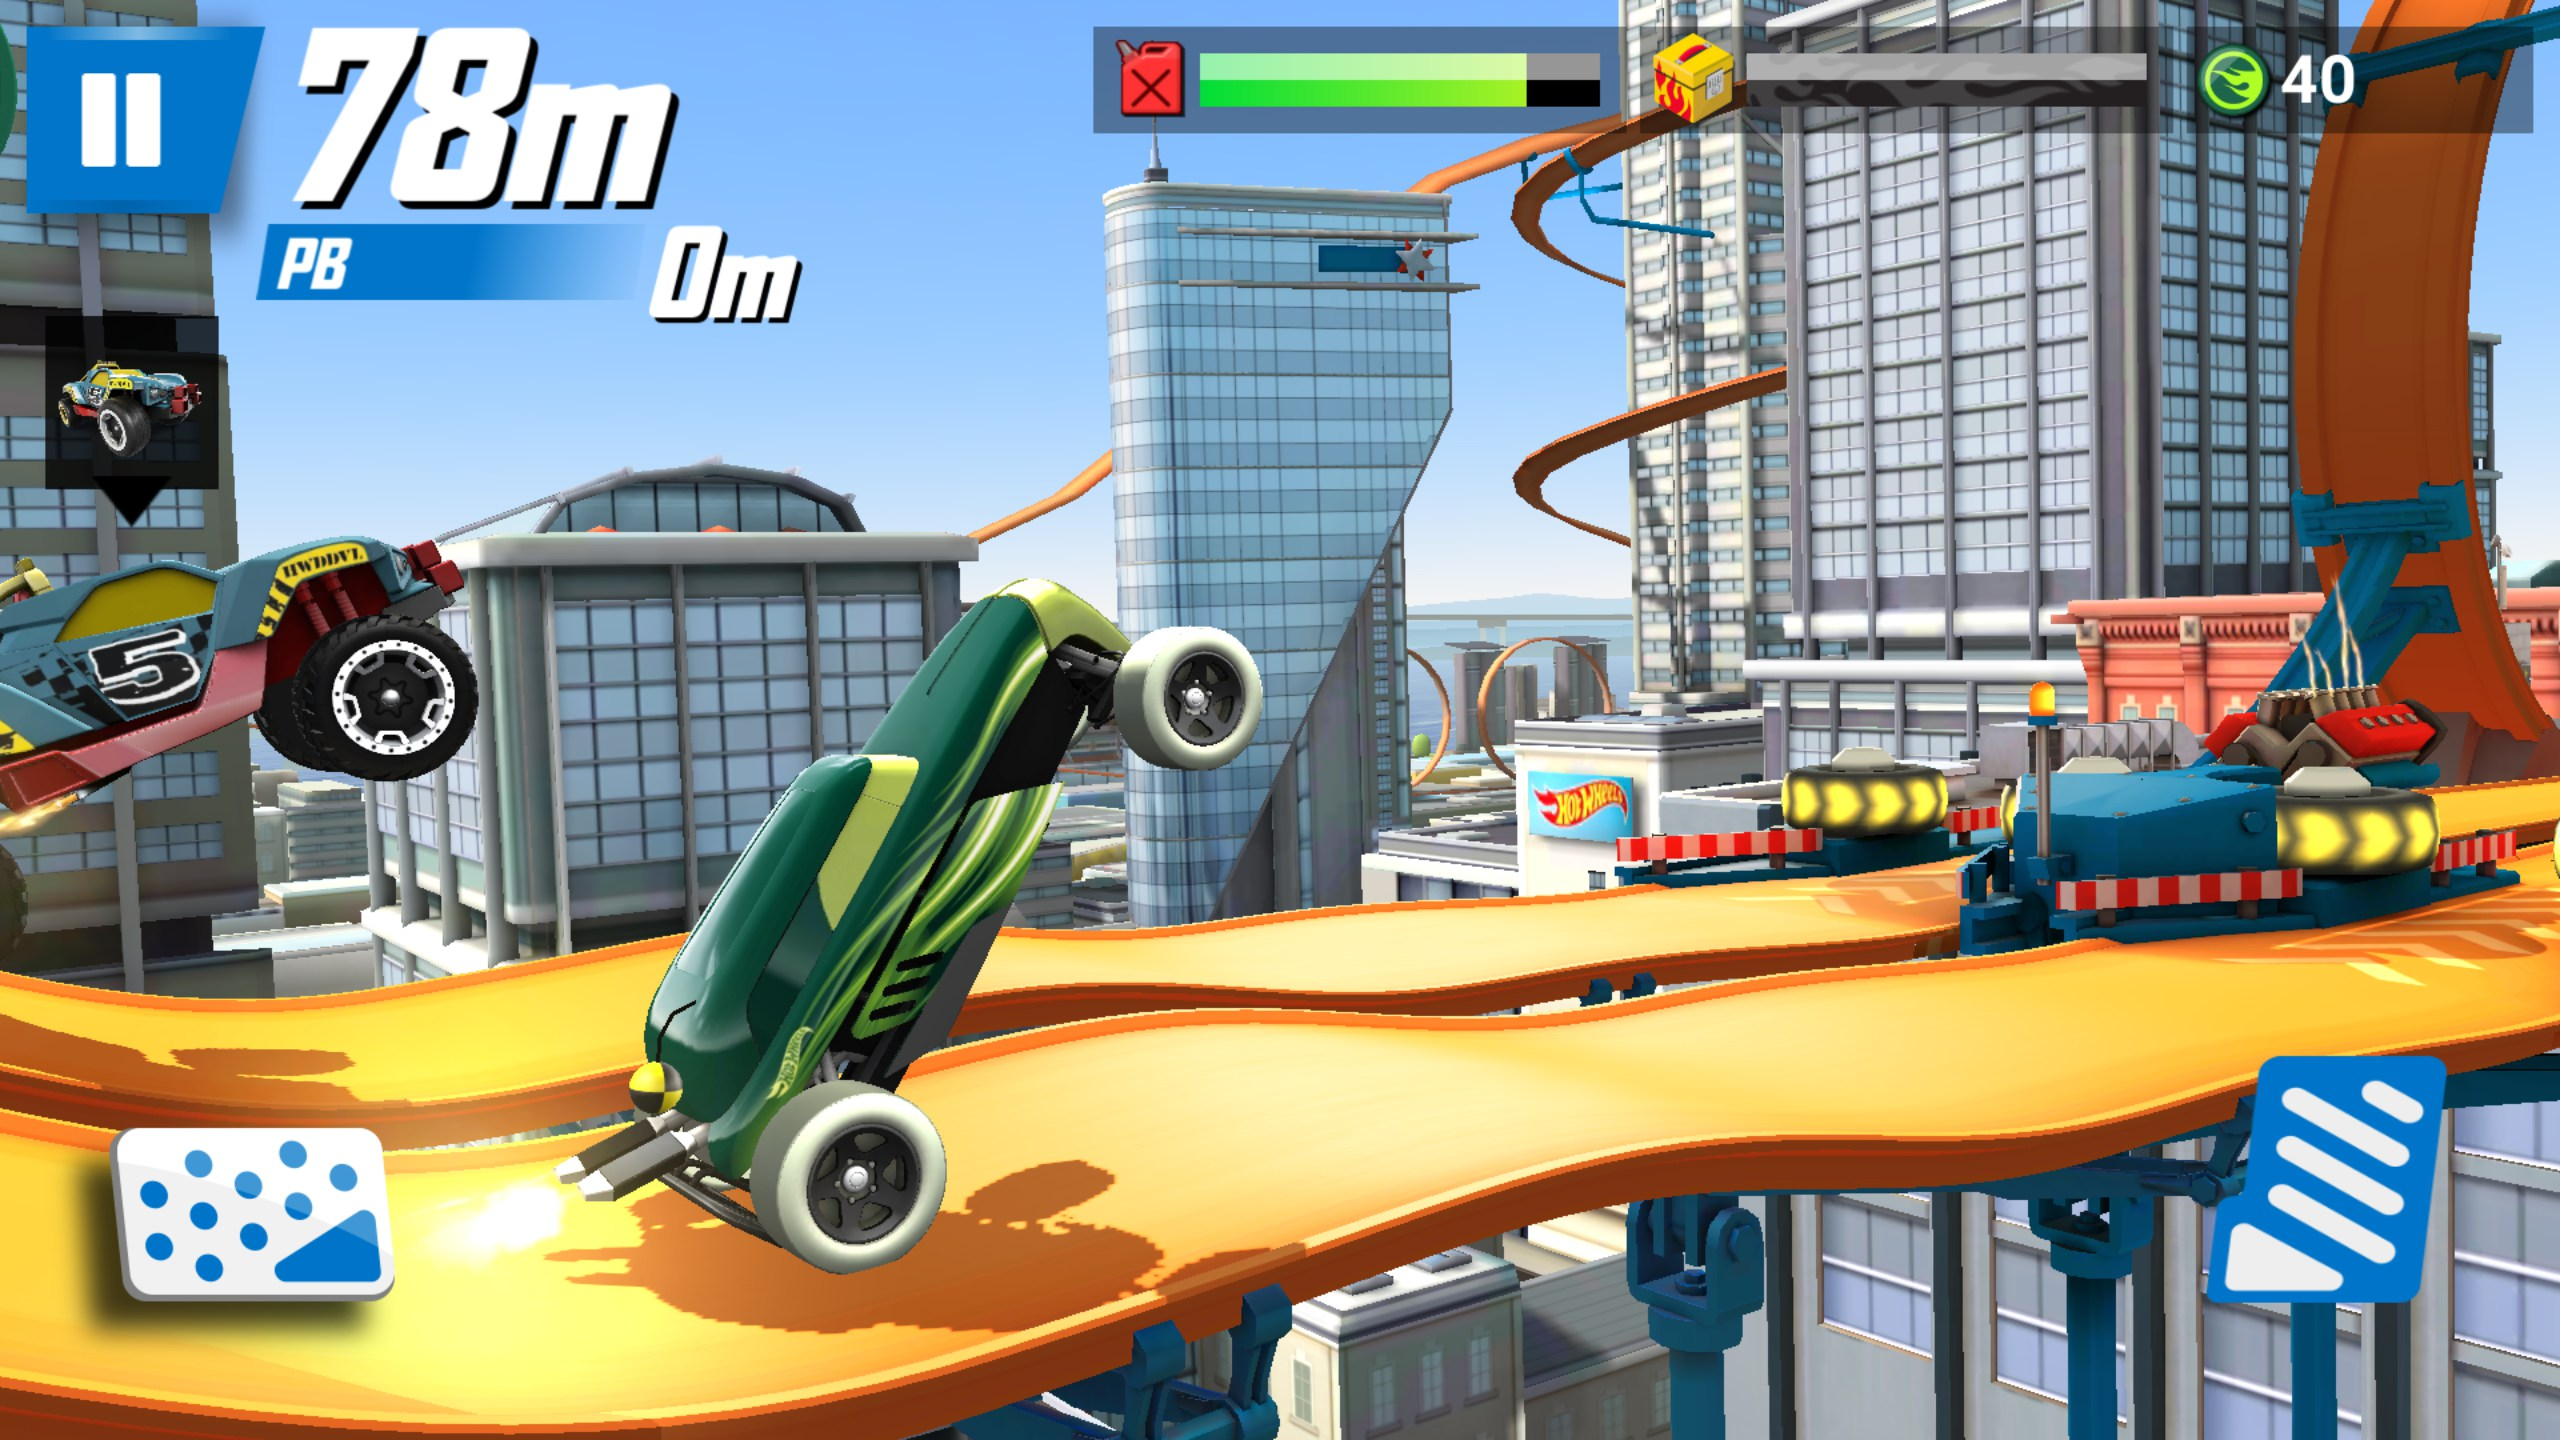 Hot Wheels Spiel